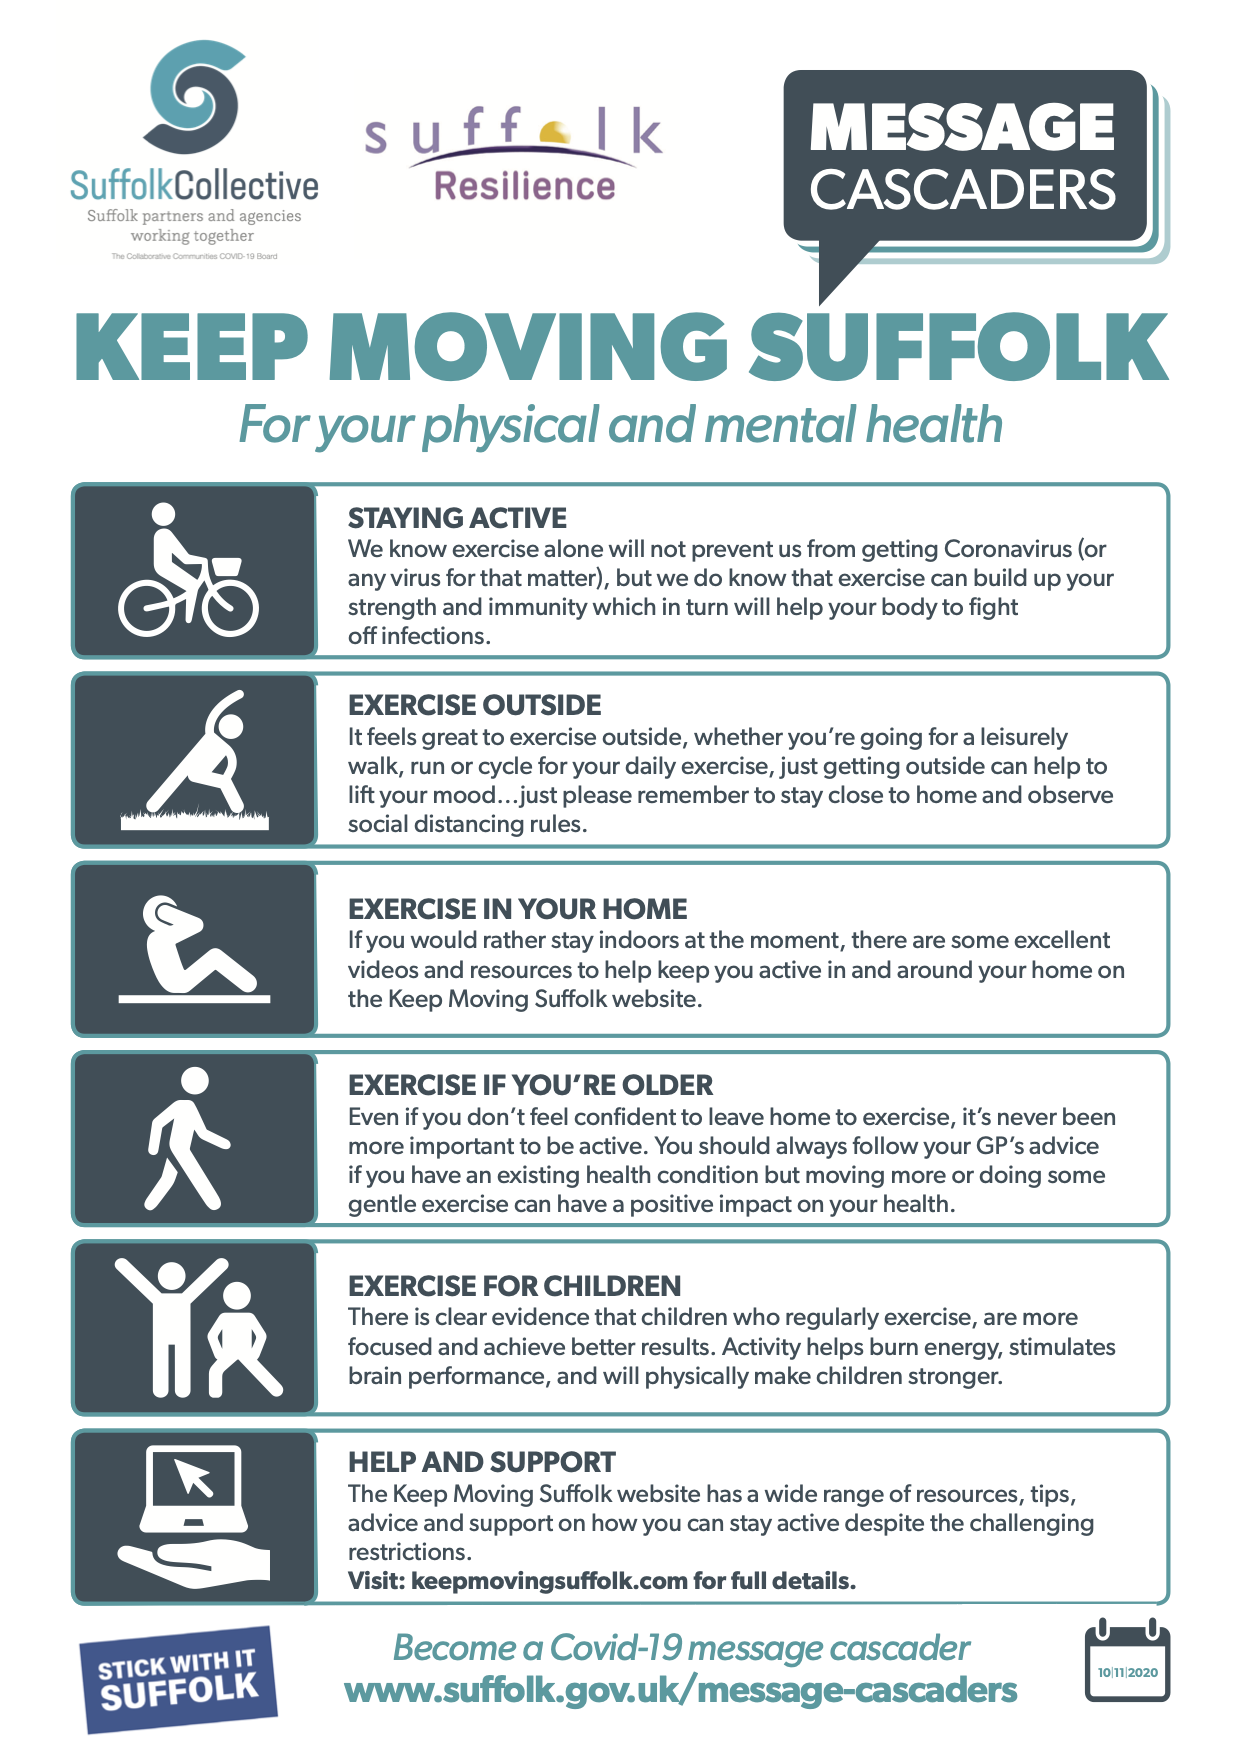 Infographic of exercising images